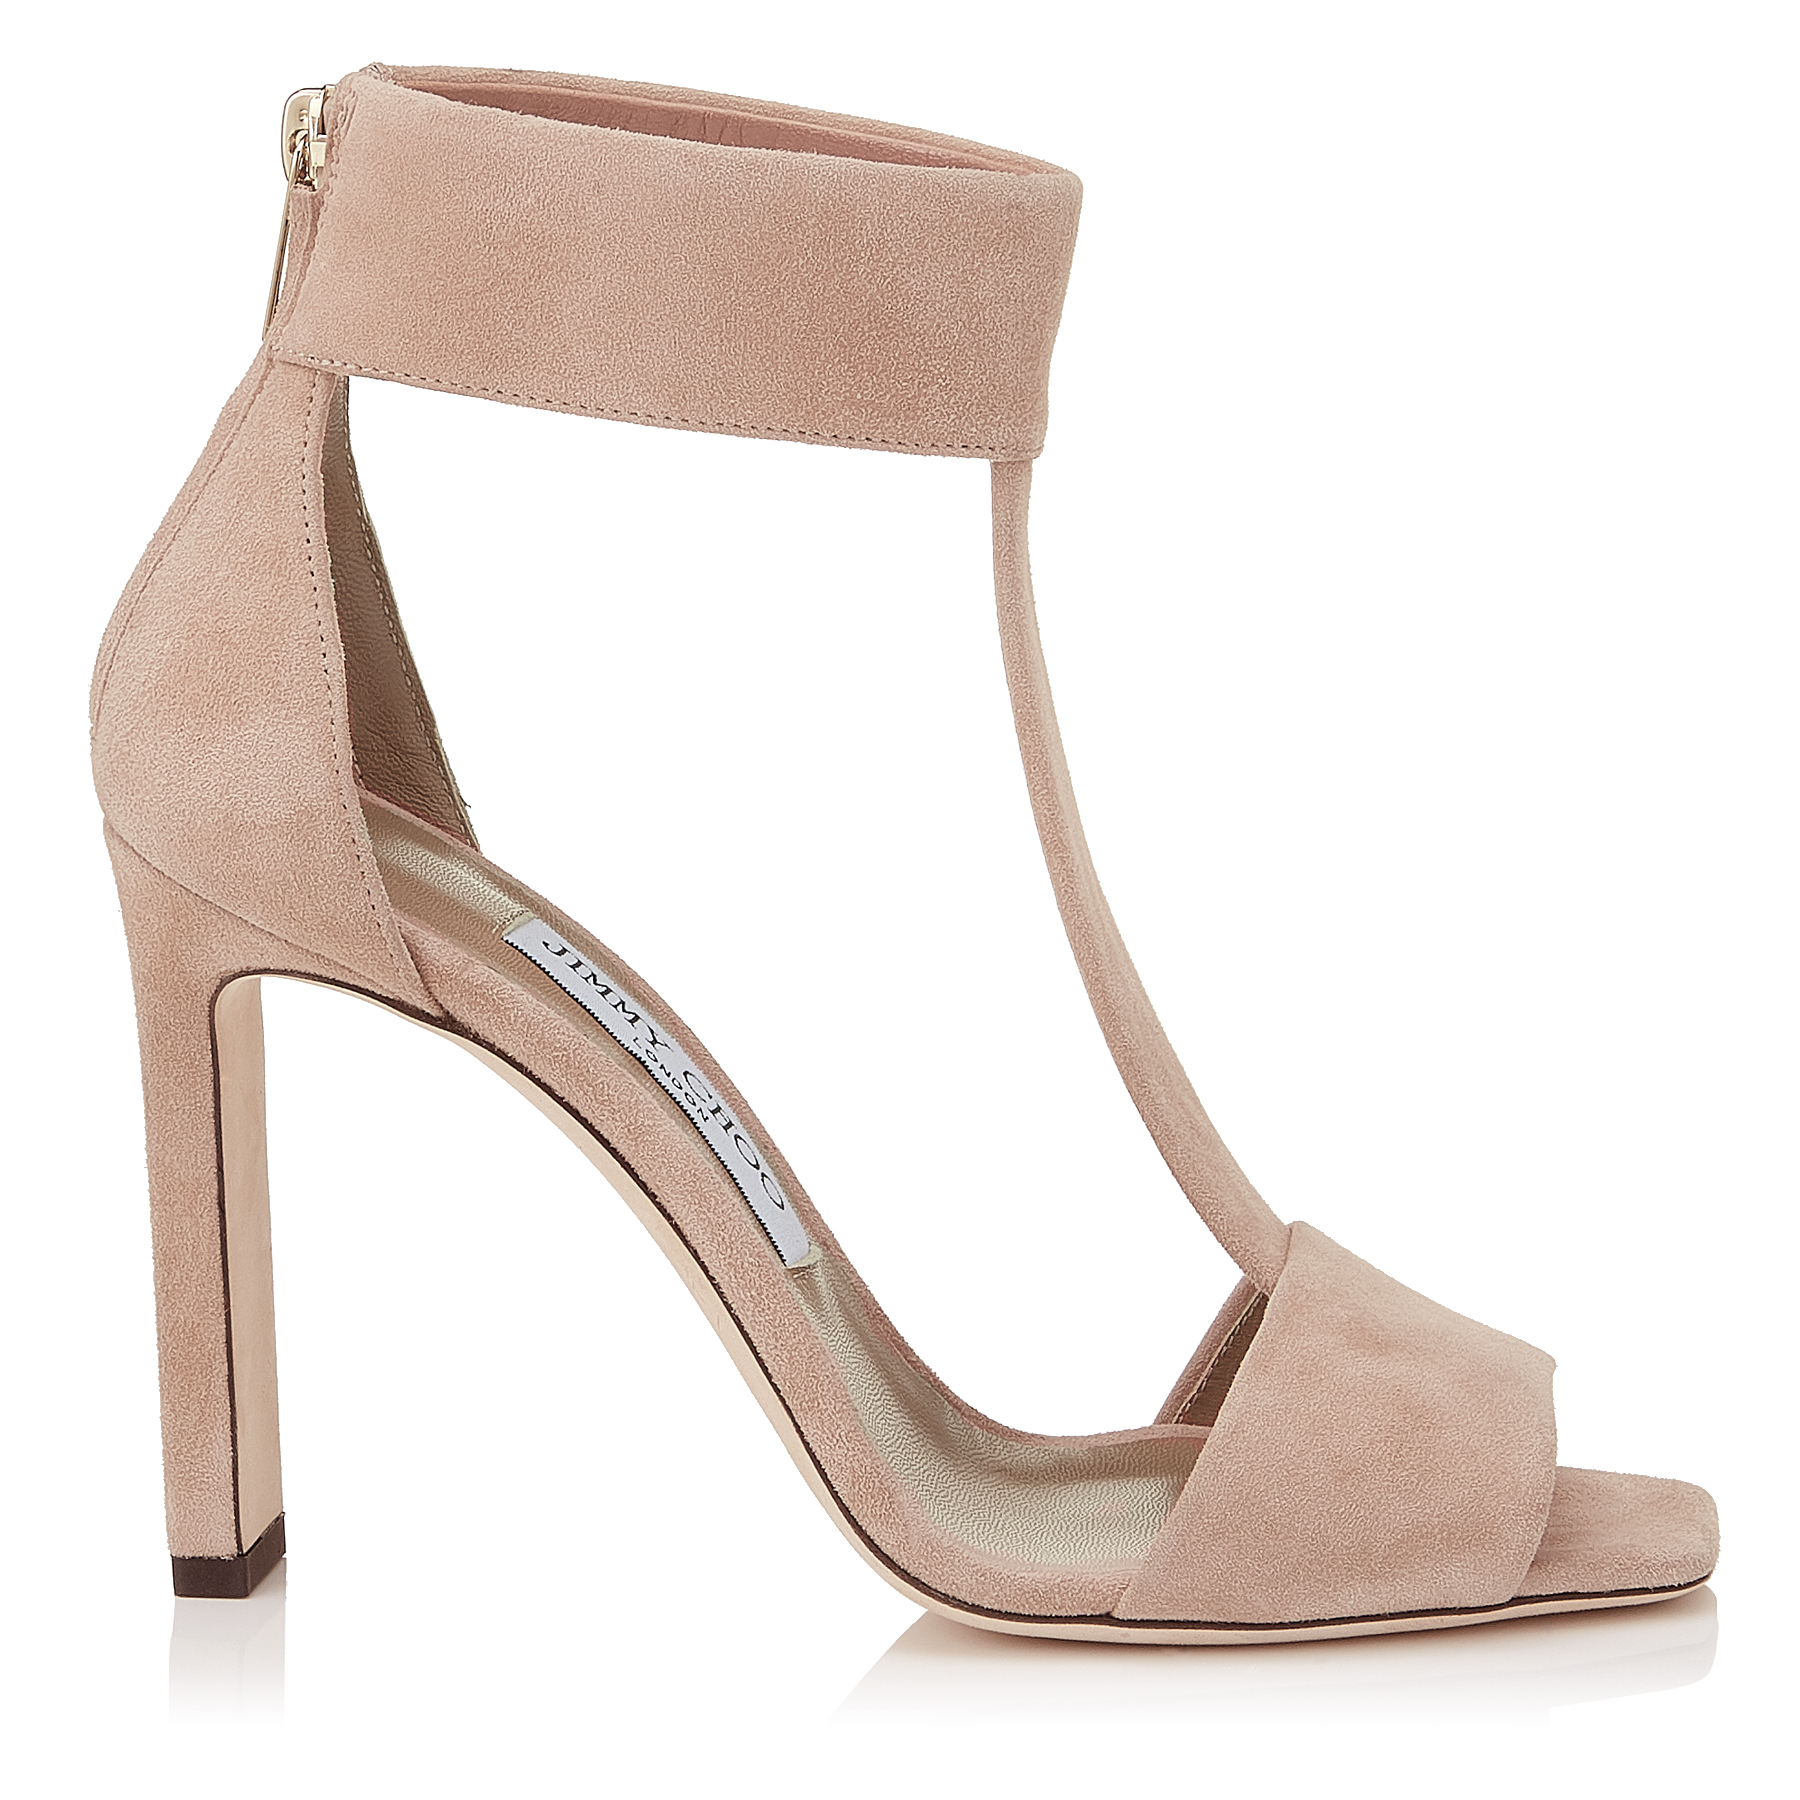 BETHEL 100 Ballet Pink Suede Sandals by Jimmy Choo